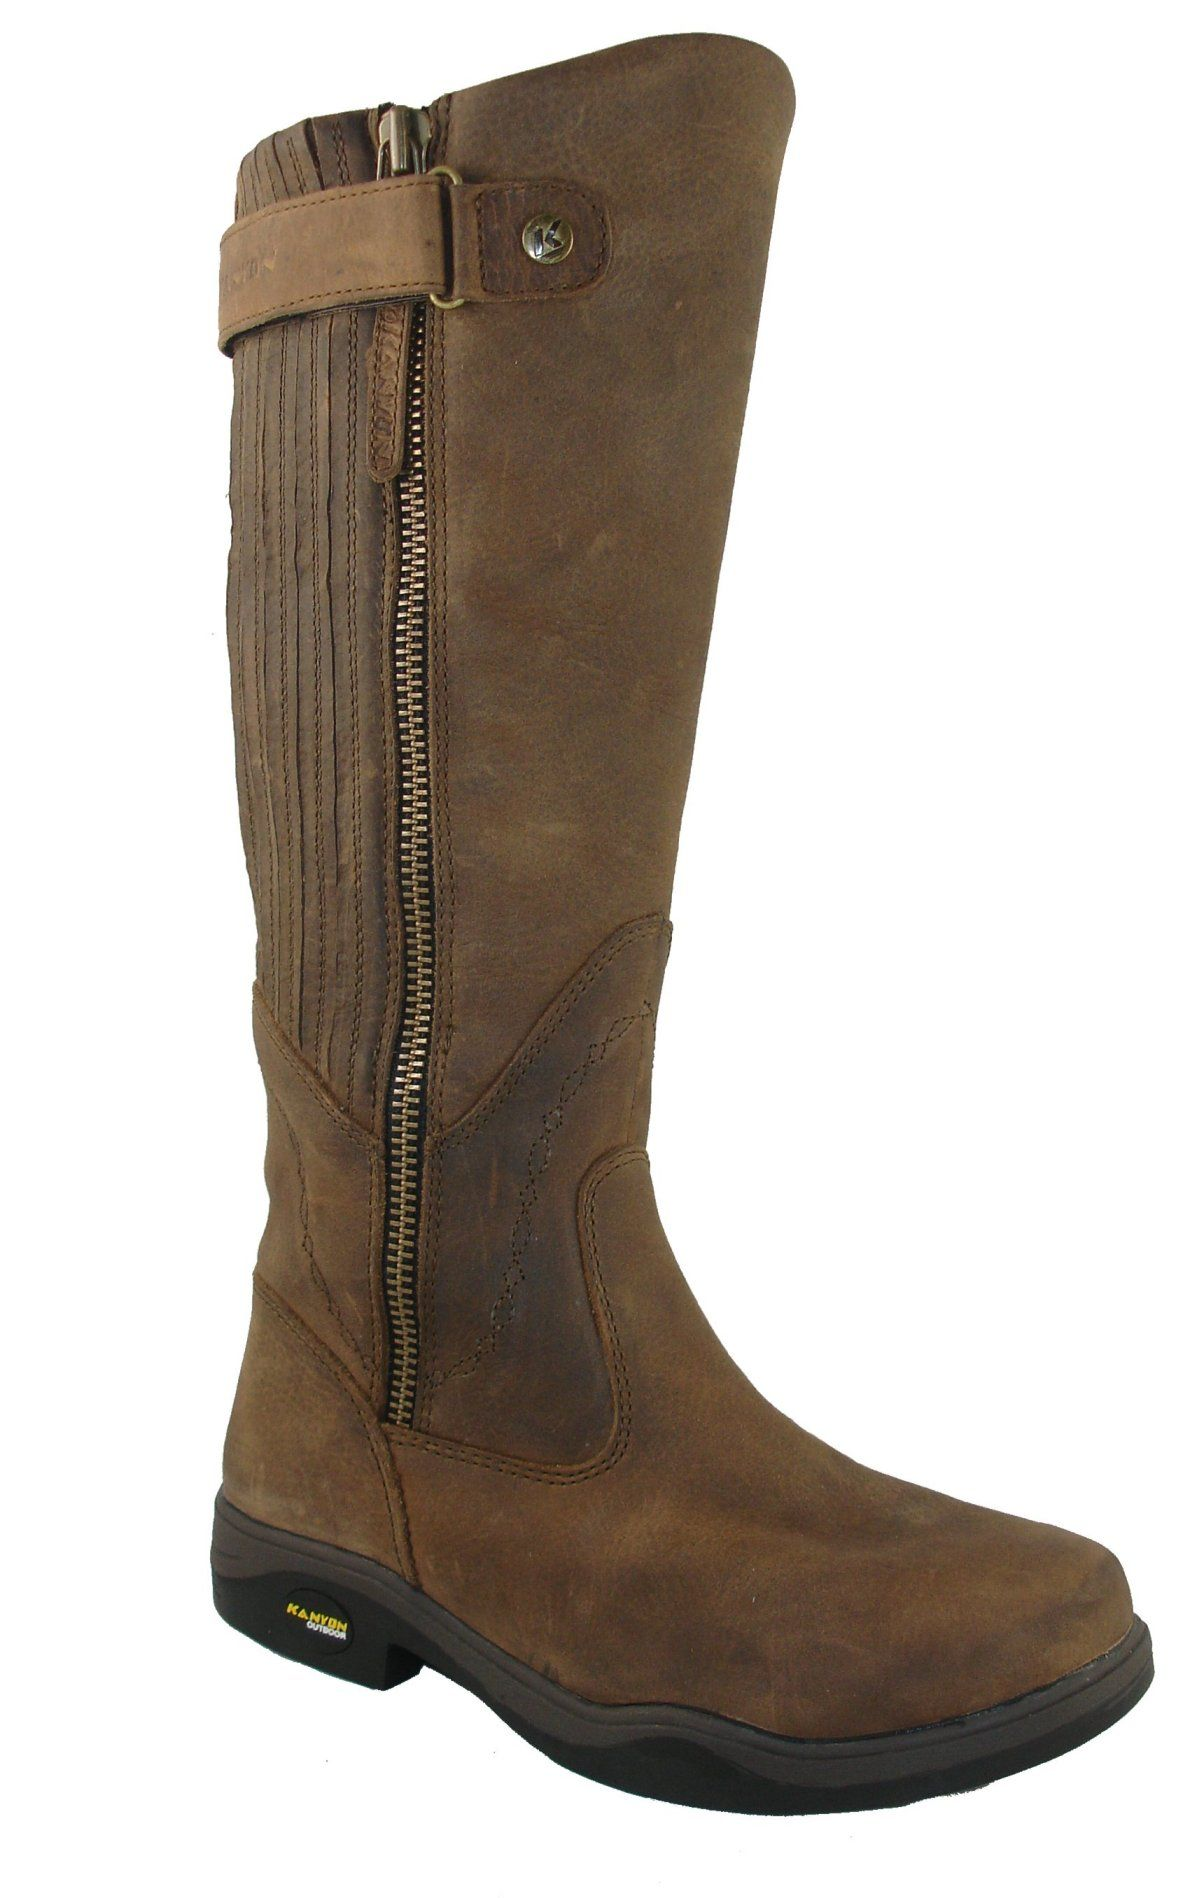 kanyon gorse x rider waterproof boot brown